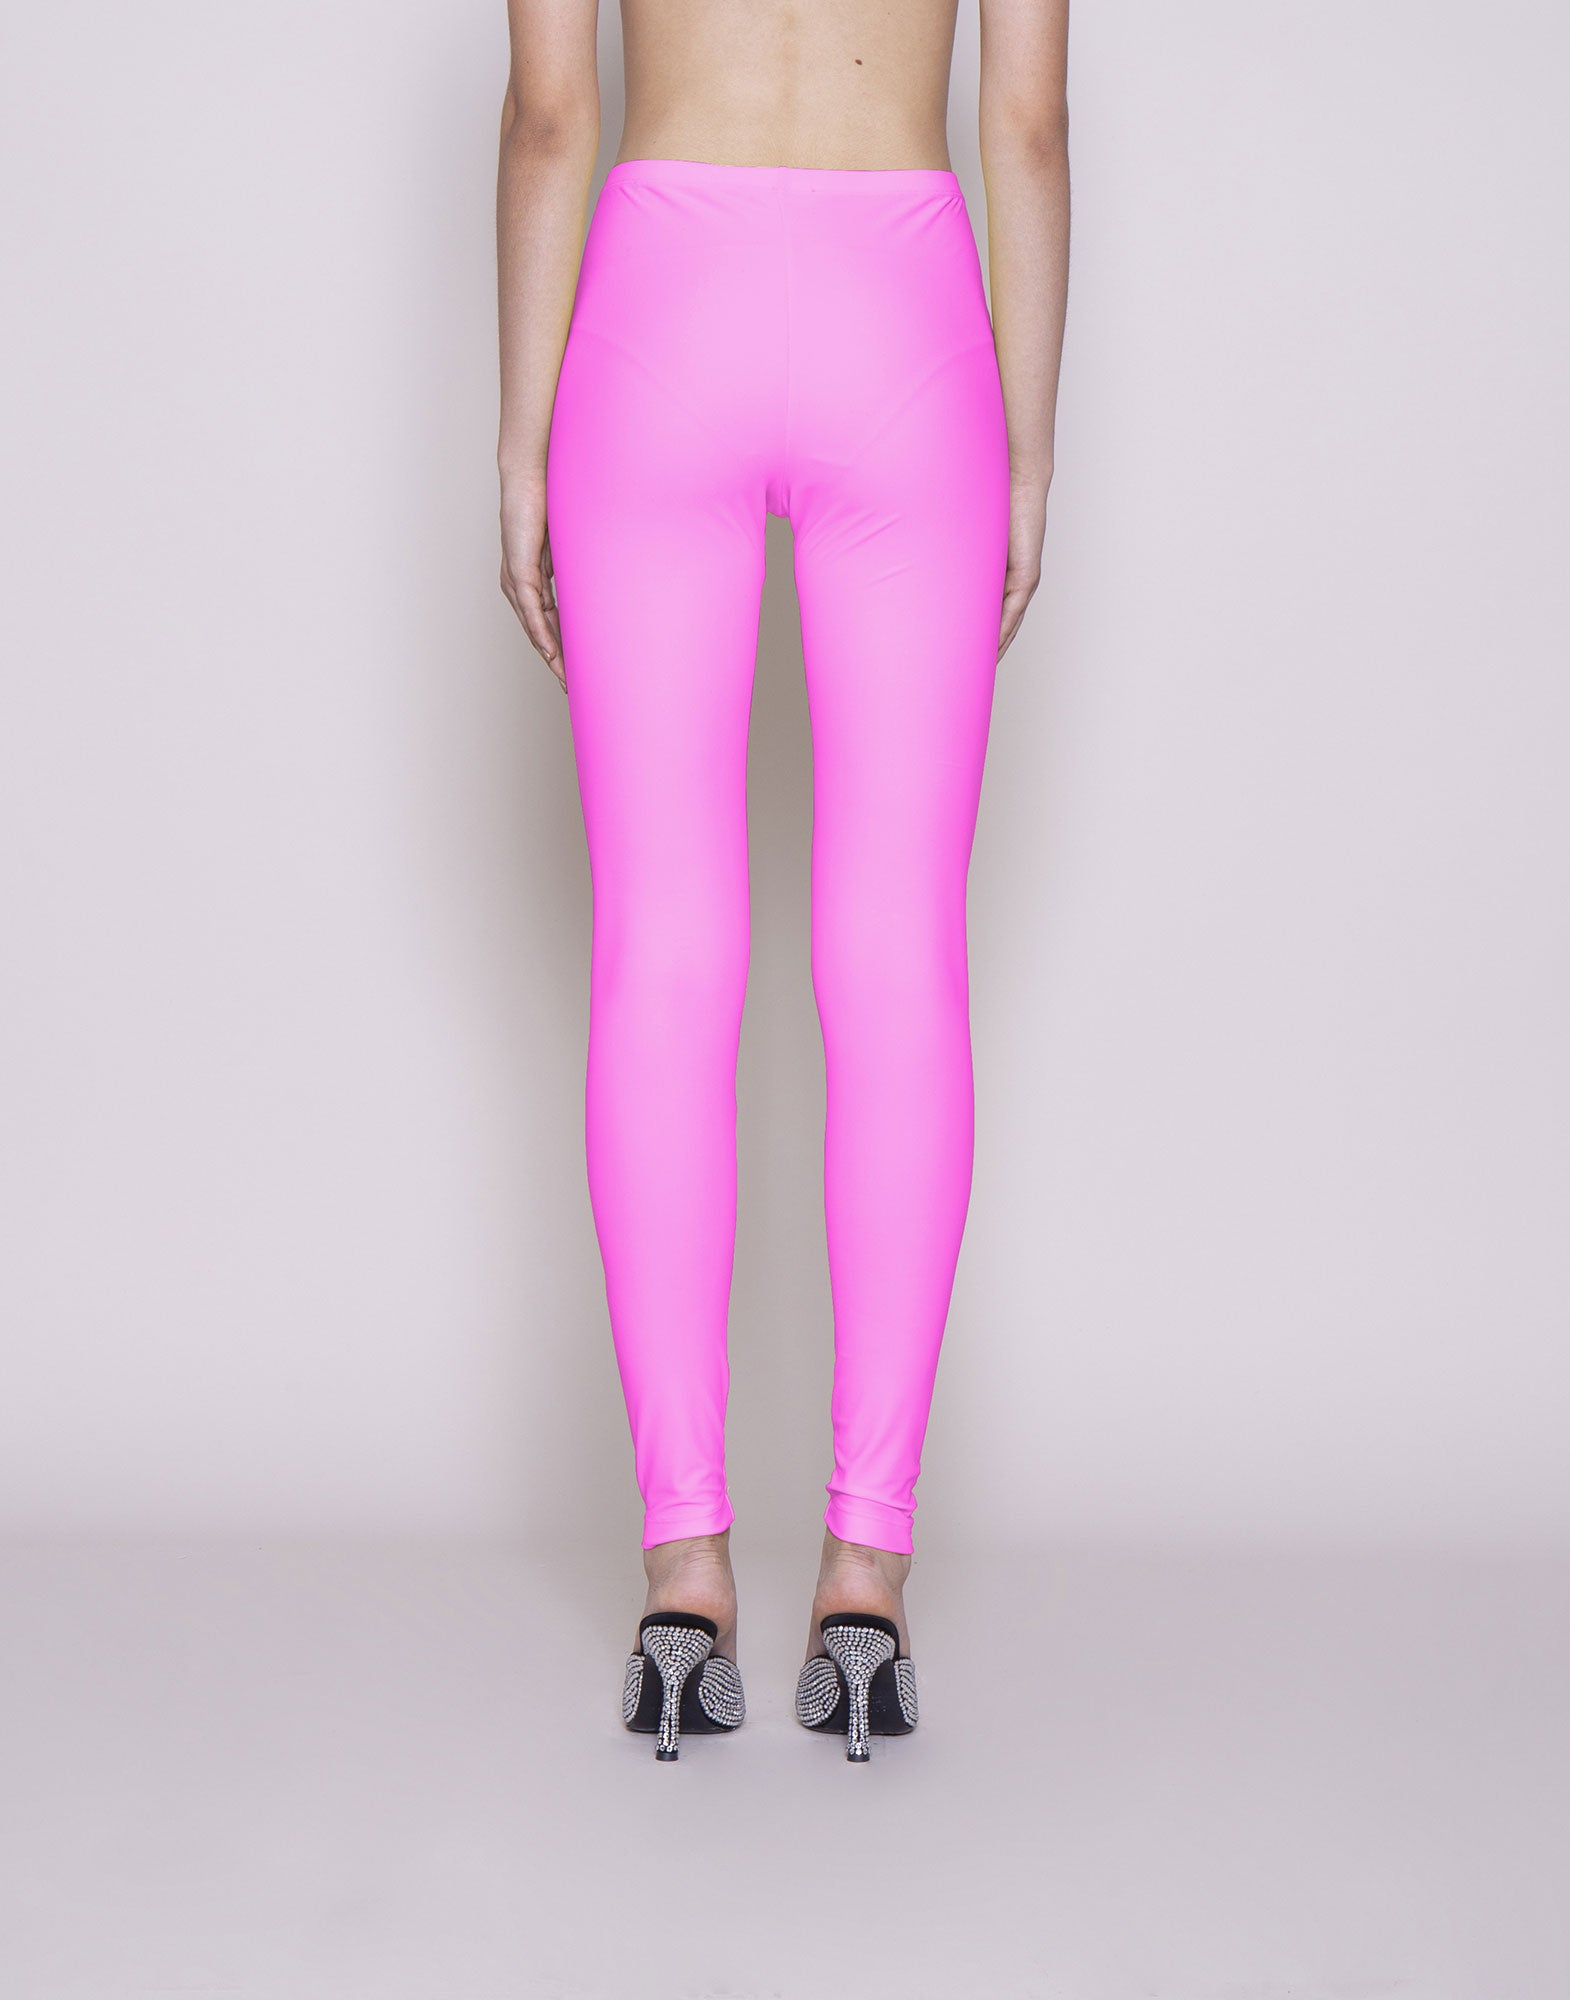 Pink lycra leggings | NEW ARRIVALS